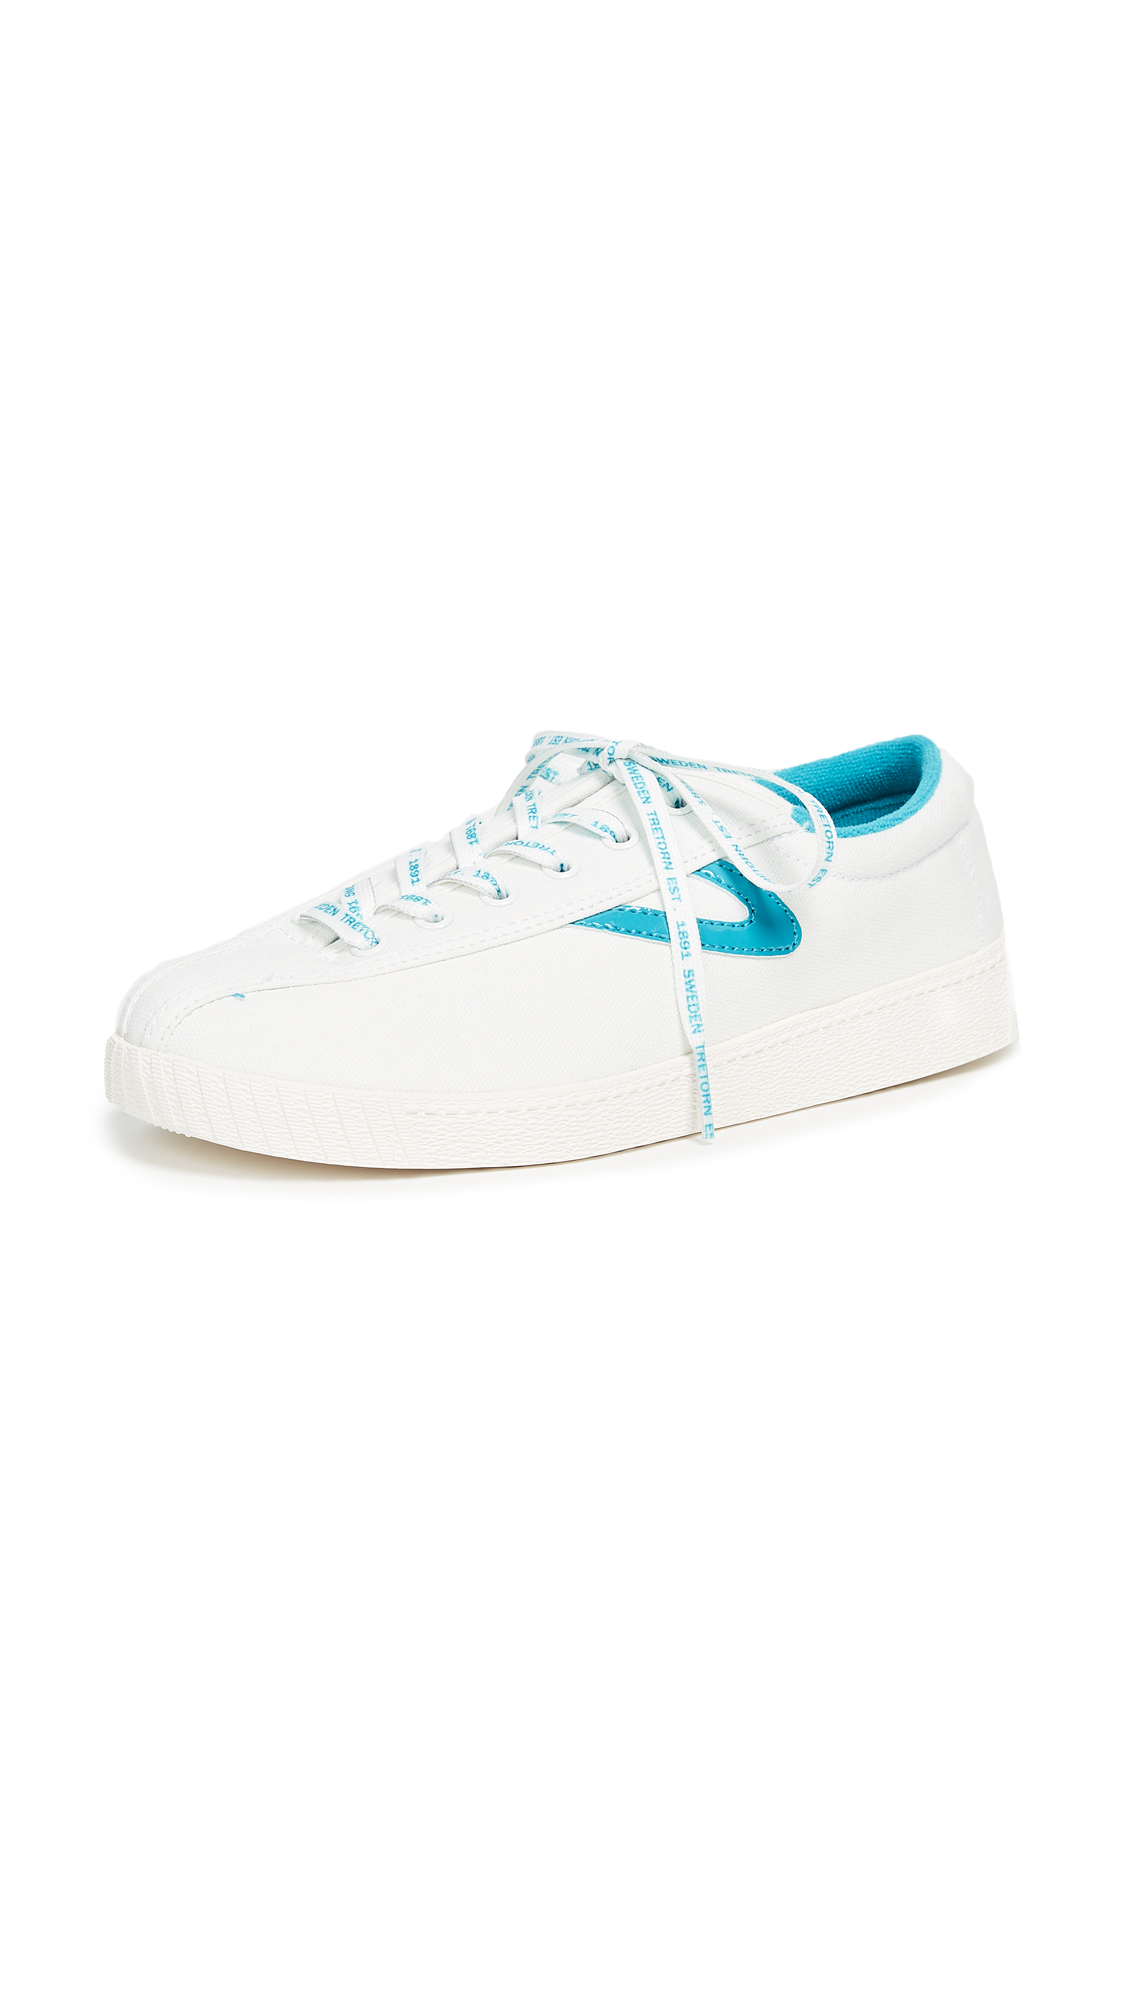 Tretorn Nylite Plus Lace Up Sneakers - Ivory/Teal